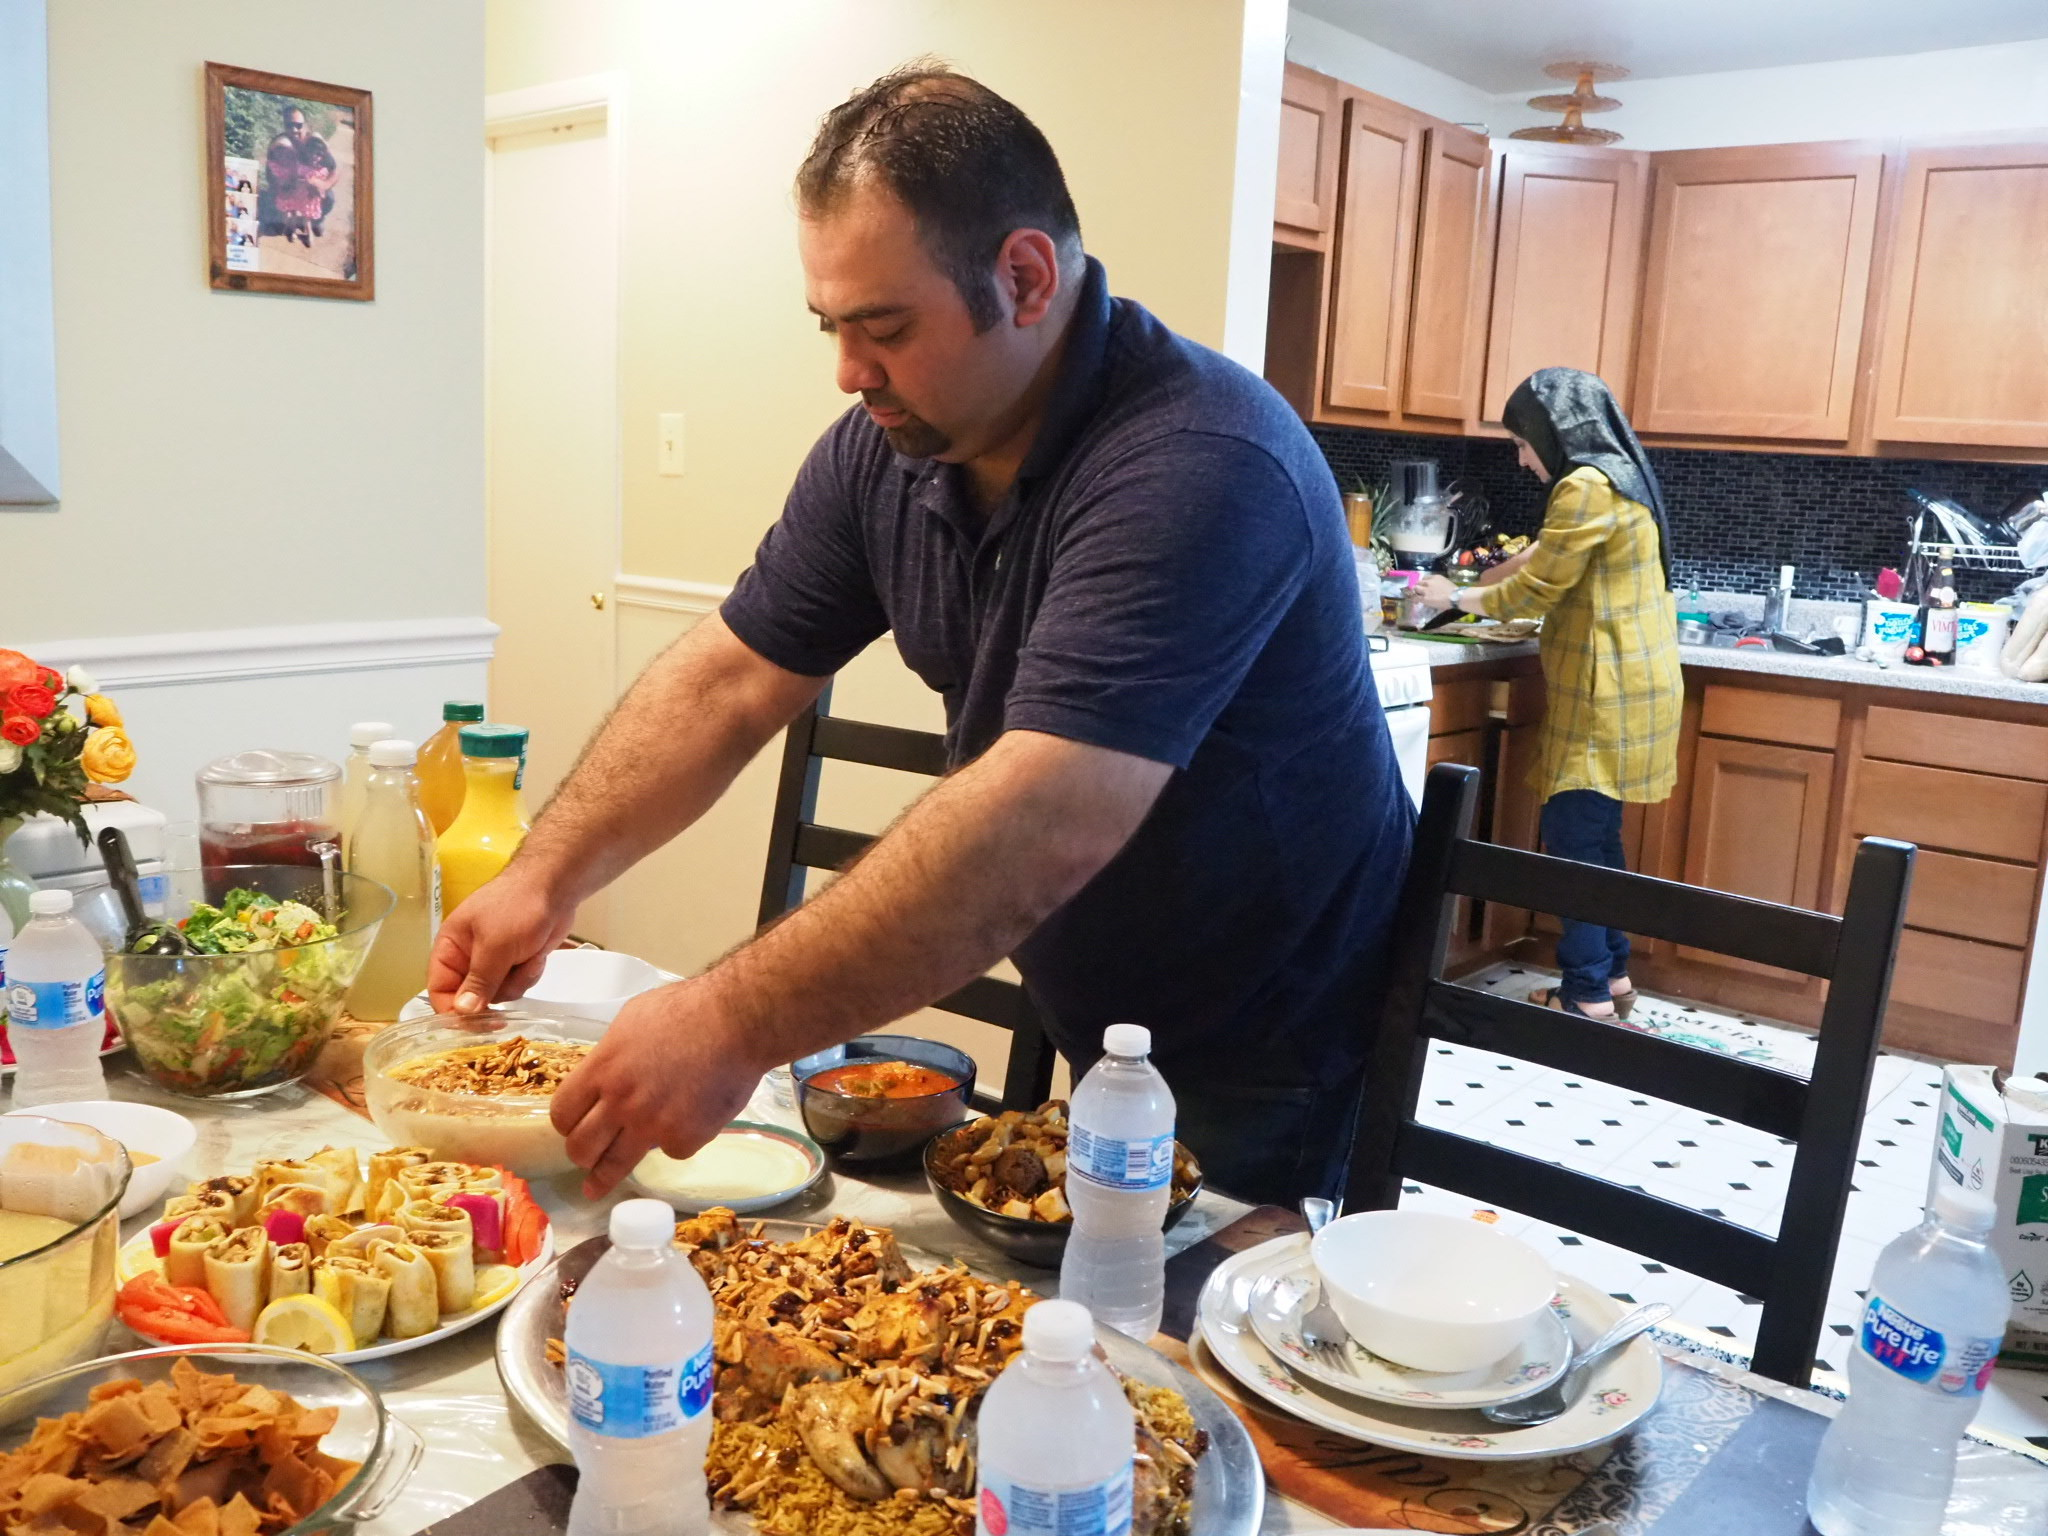 FILE - Syrian refugee Majed Abdalraheem, 29, sets the table at his home in Riverdale, Md., as he and his wife, Walaa Jadallah, prepare for the iftar meal during Ramadan, May 25, 2018.